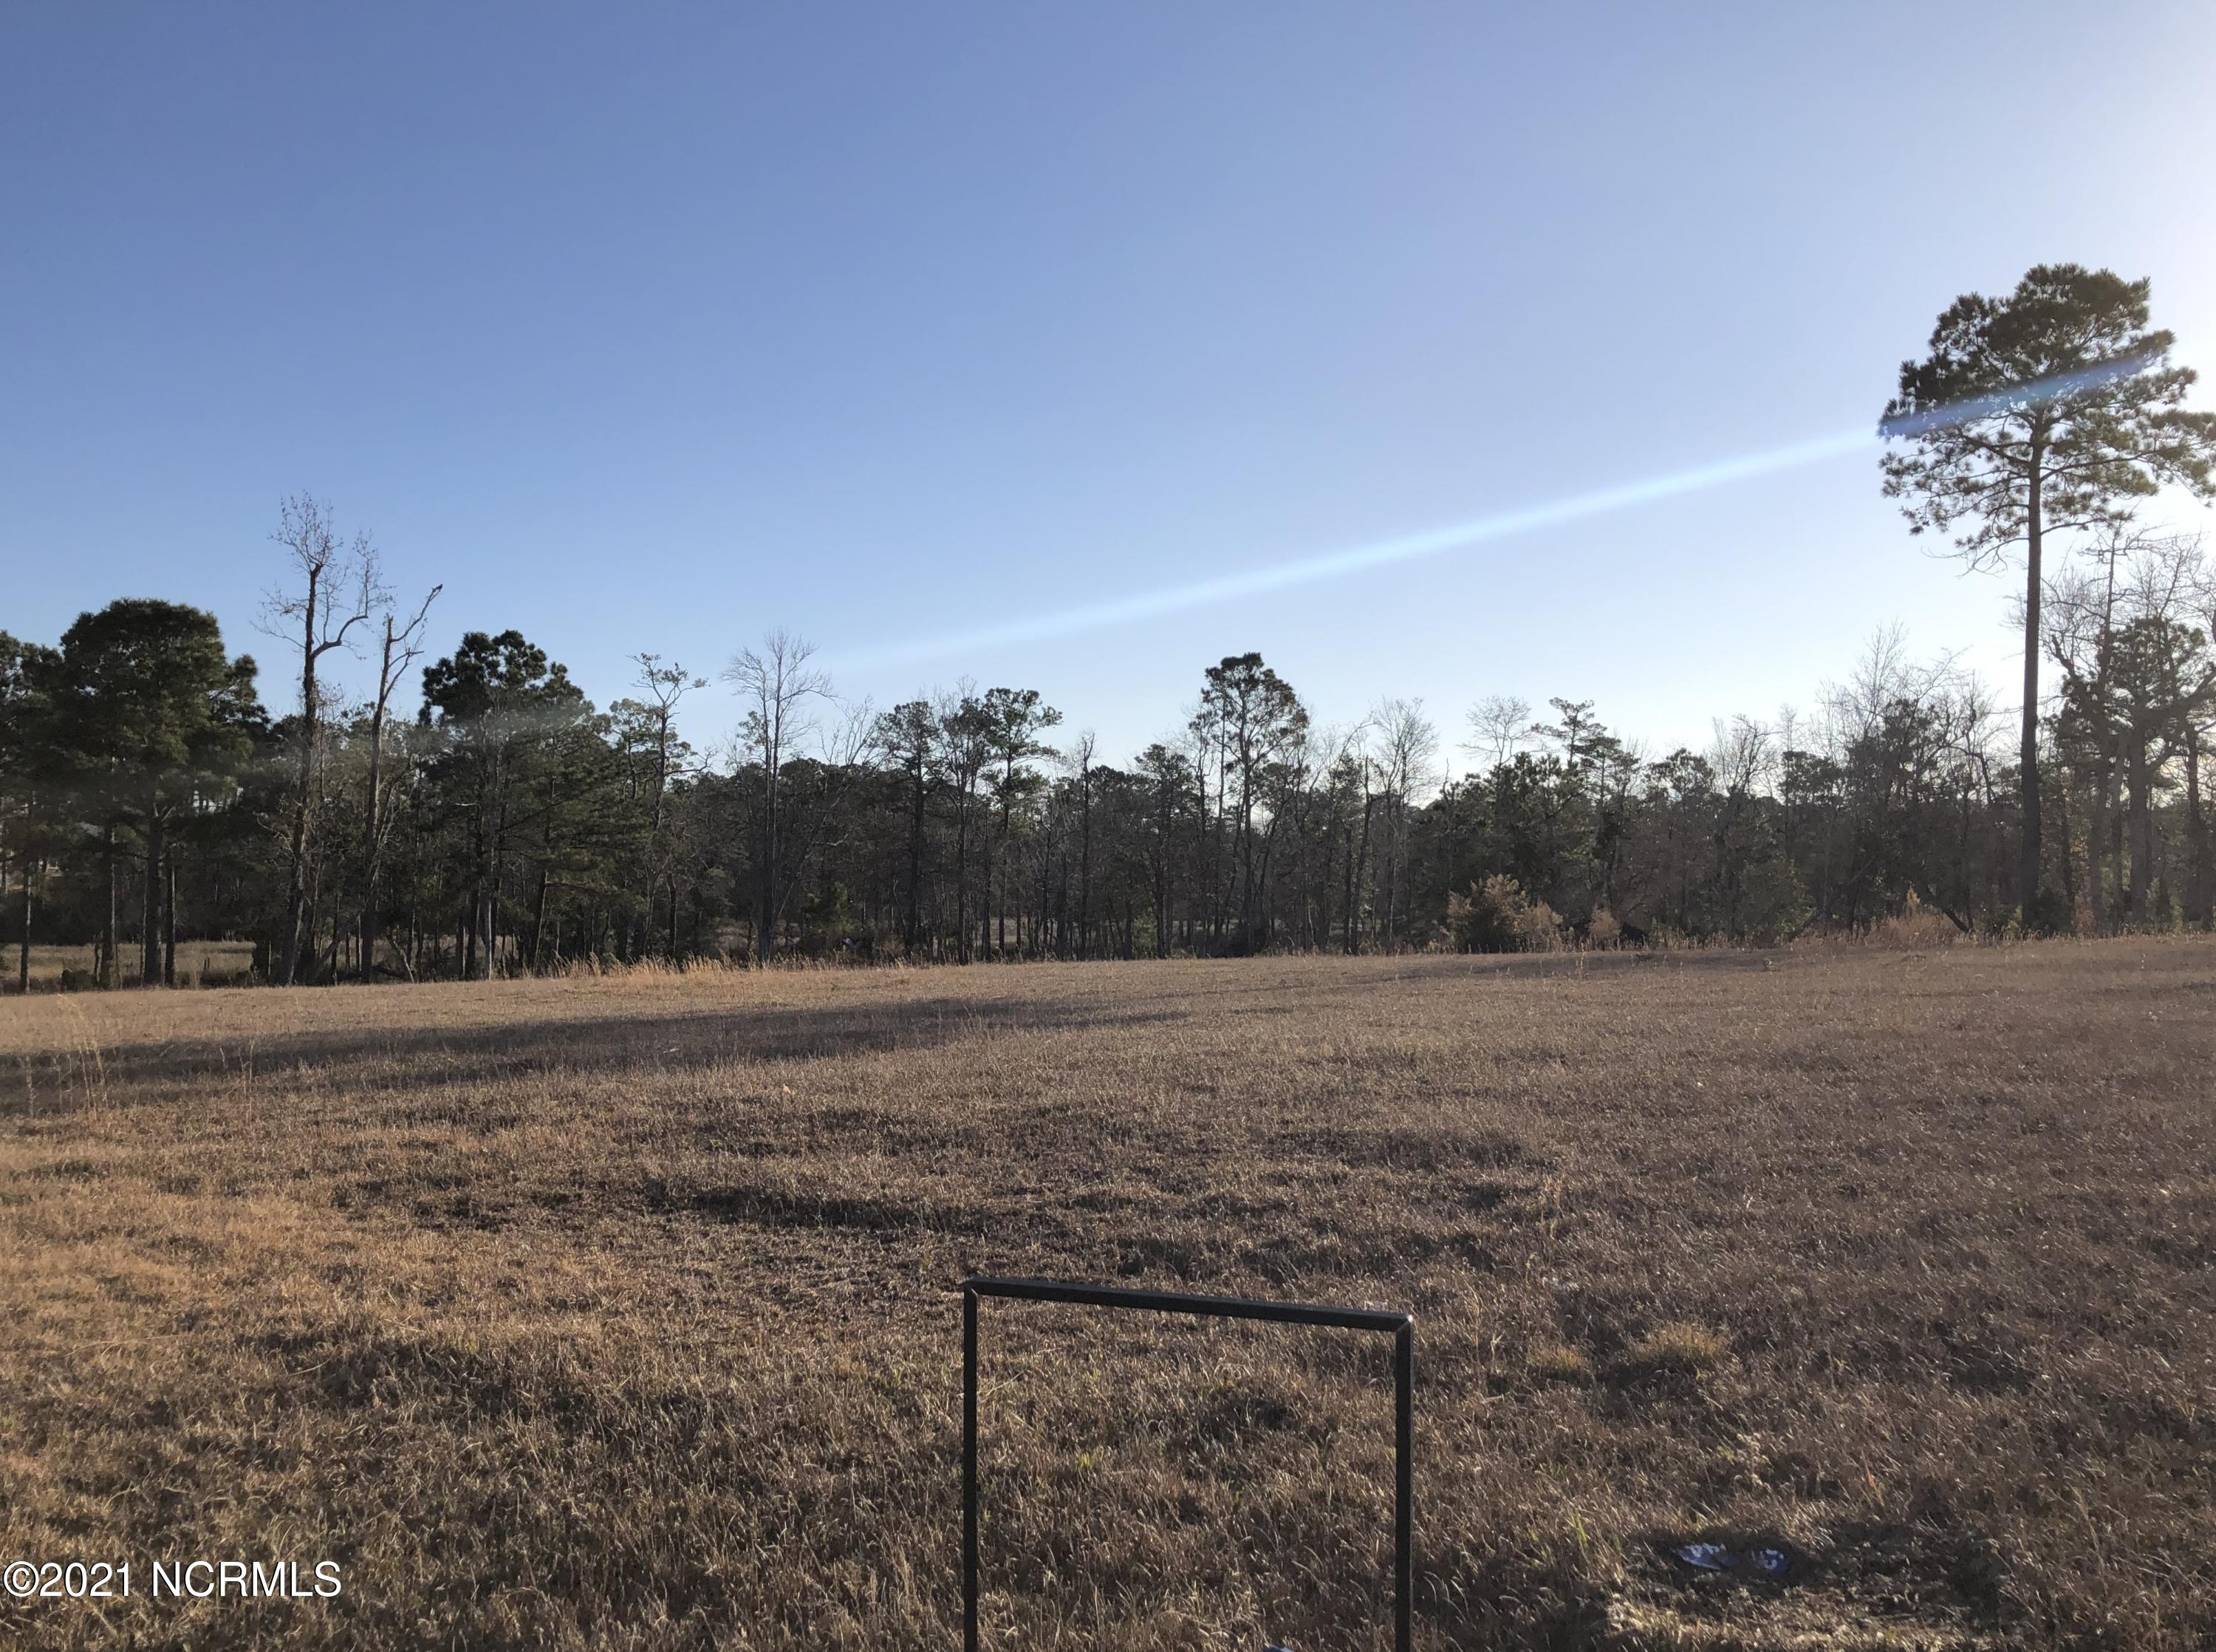 Residential building lot for sale in Swansboro! Wonderful neighborhood close to Hammocks Beach State Park, historic downtown Swansboro and more! Call for more information today!